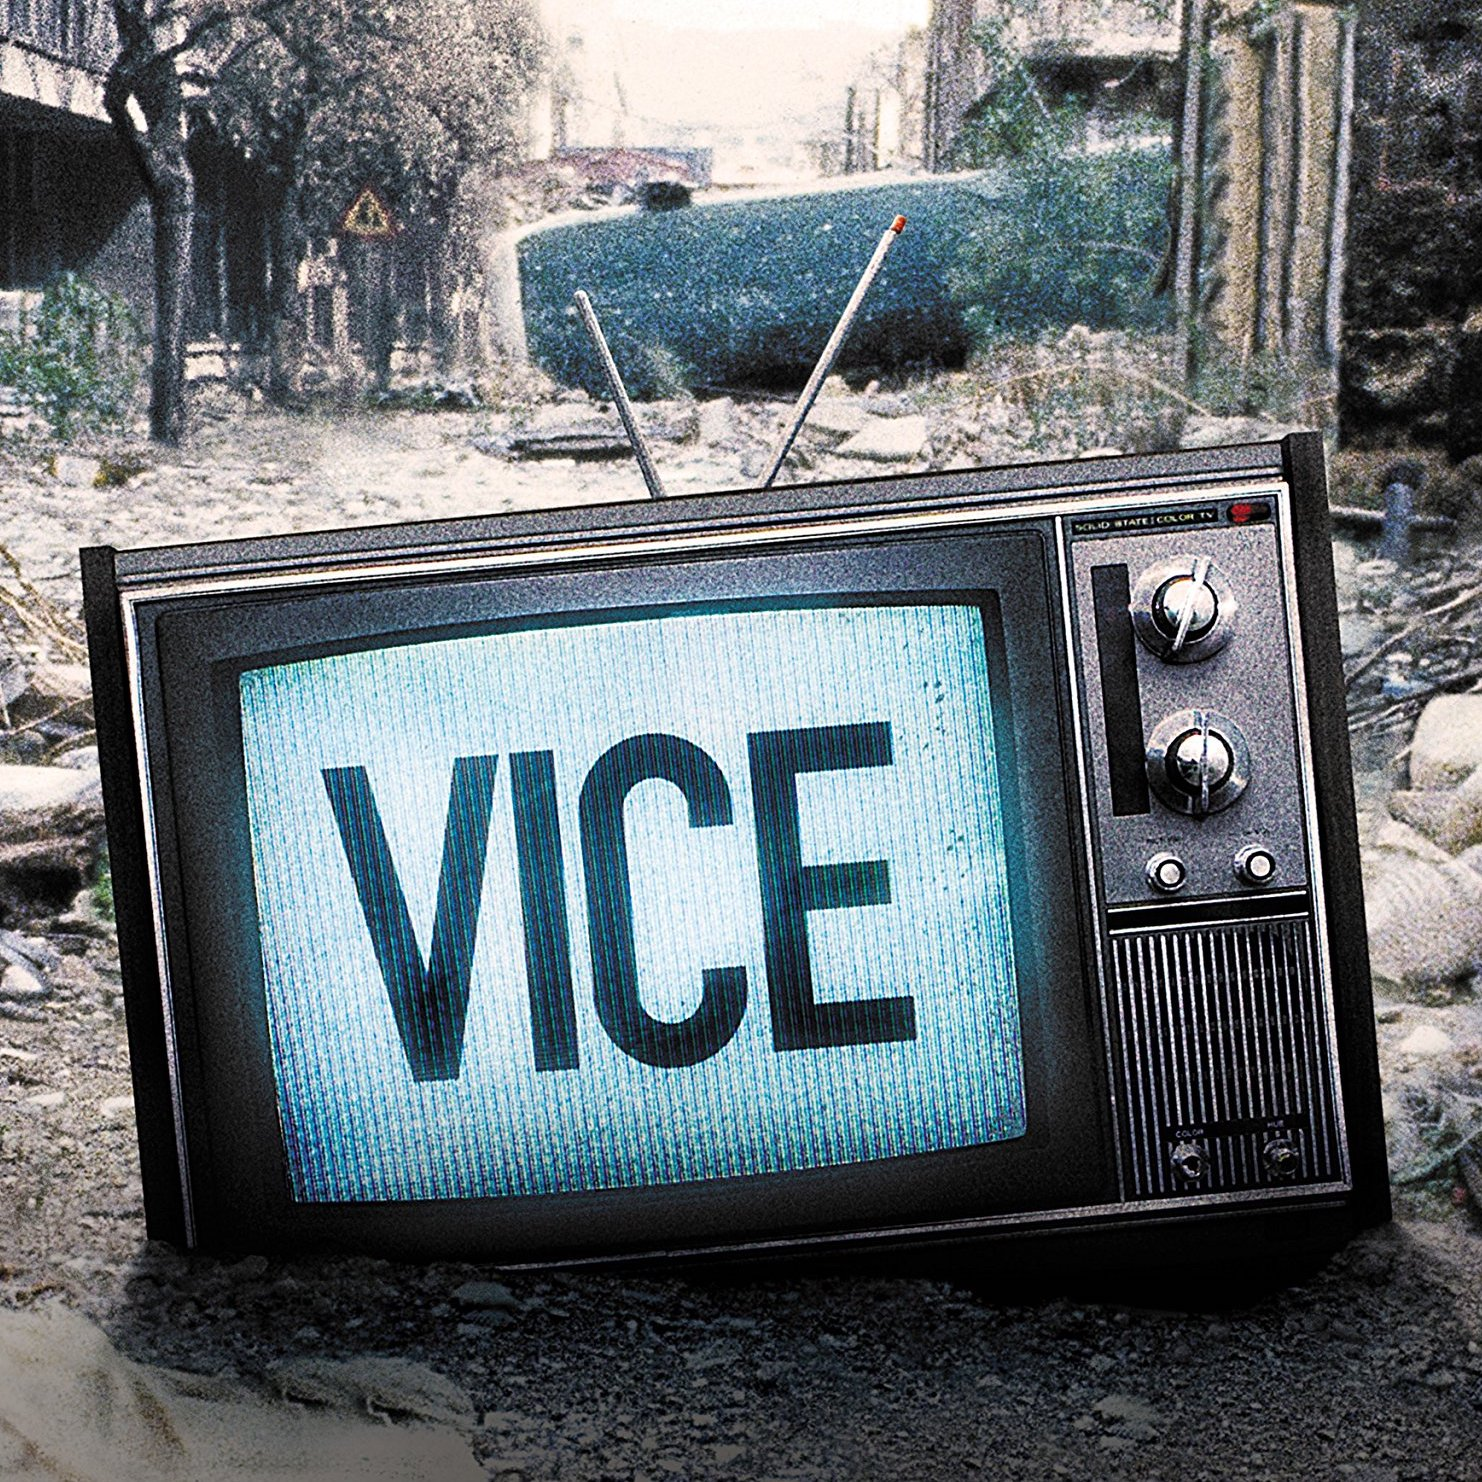 Vice on HBO: music licensing.